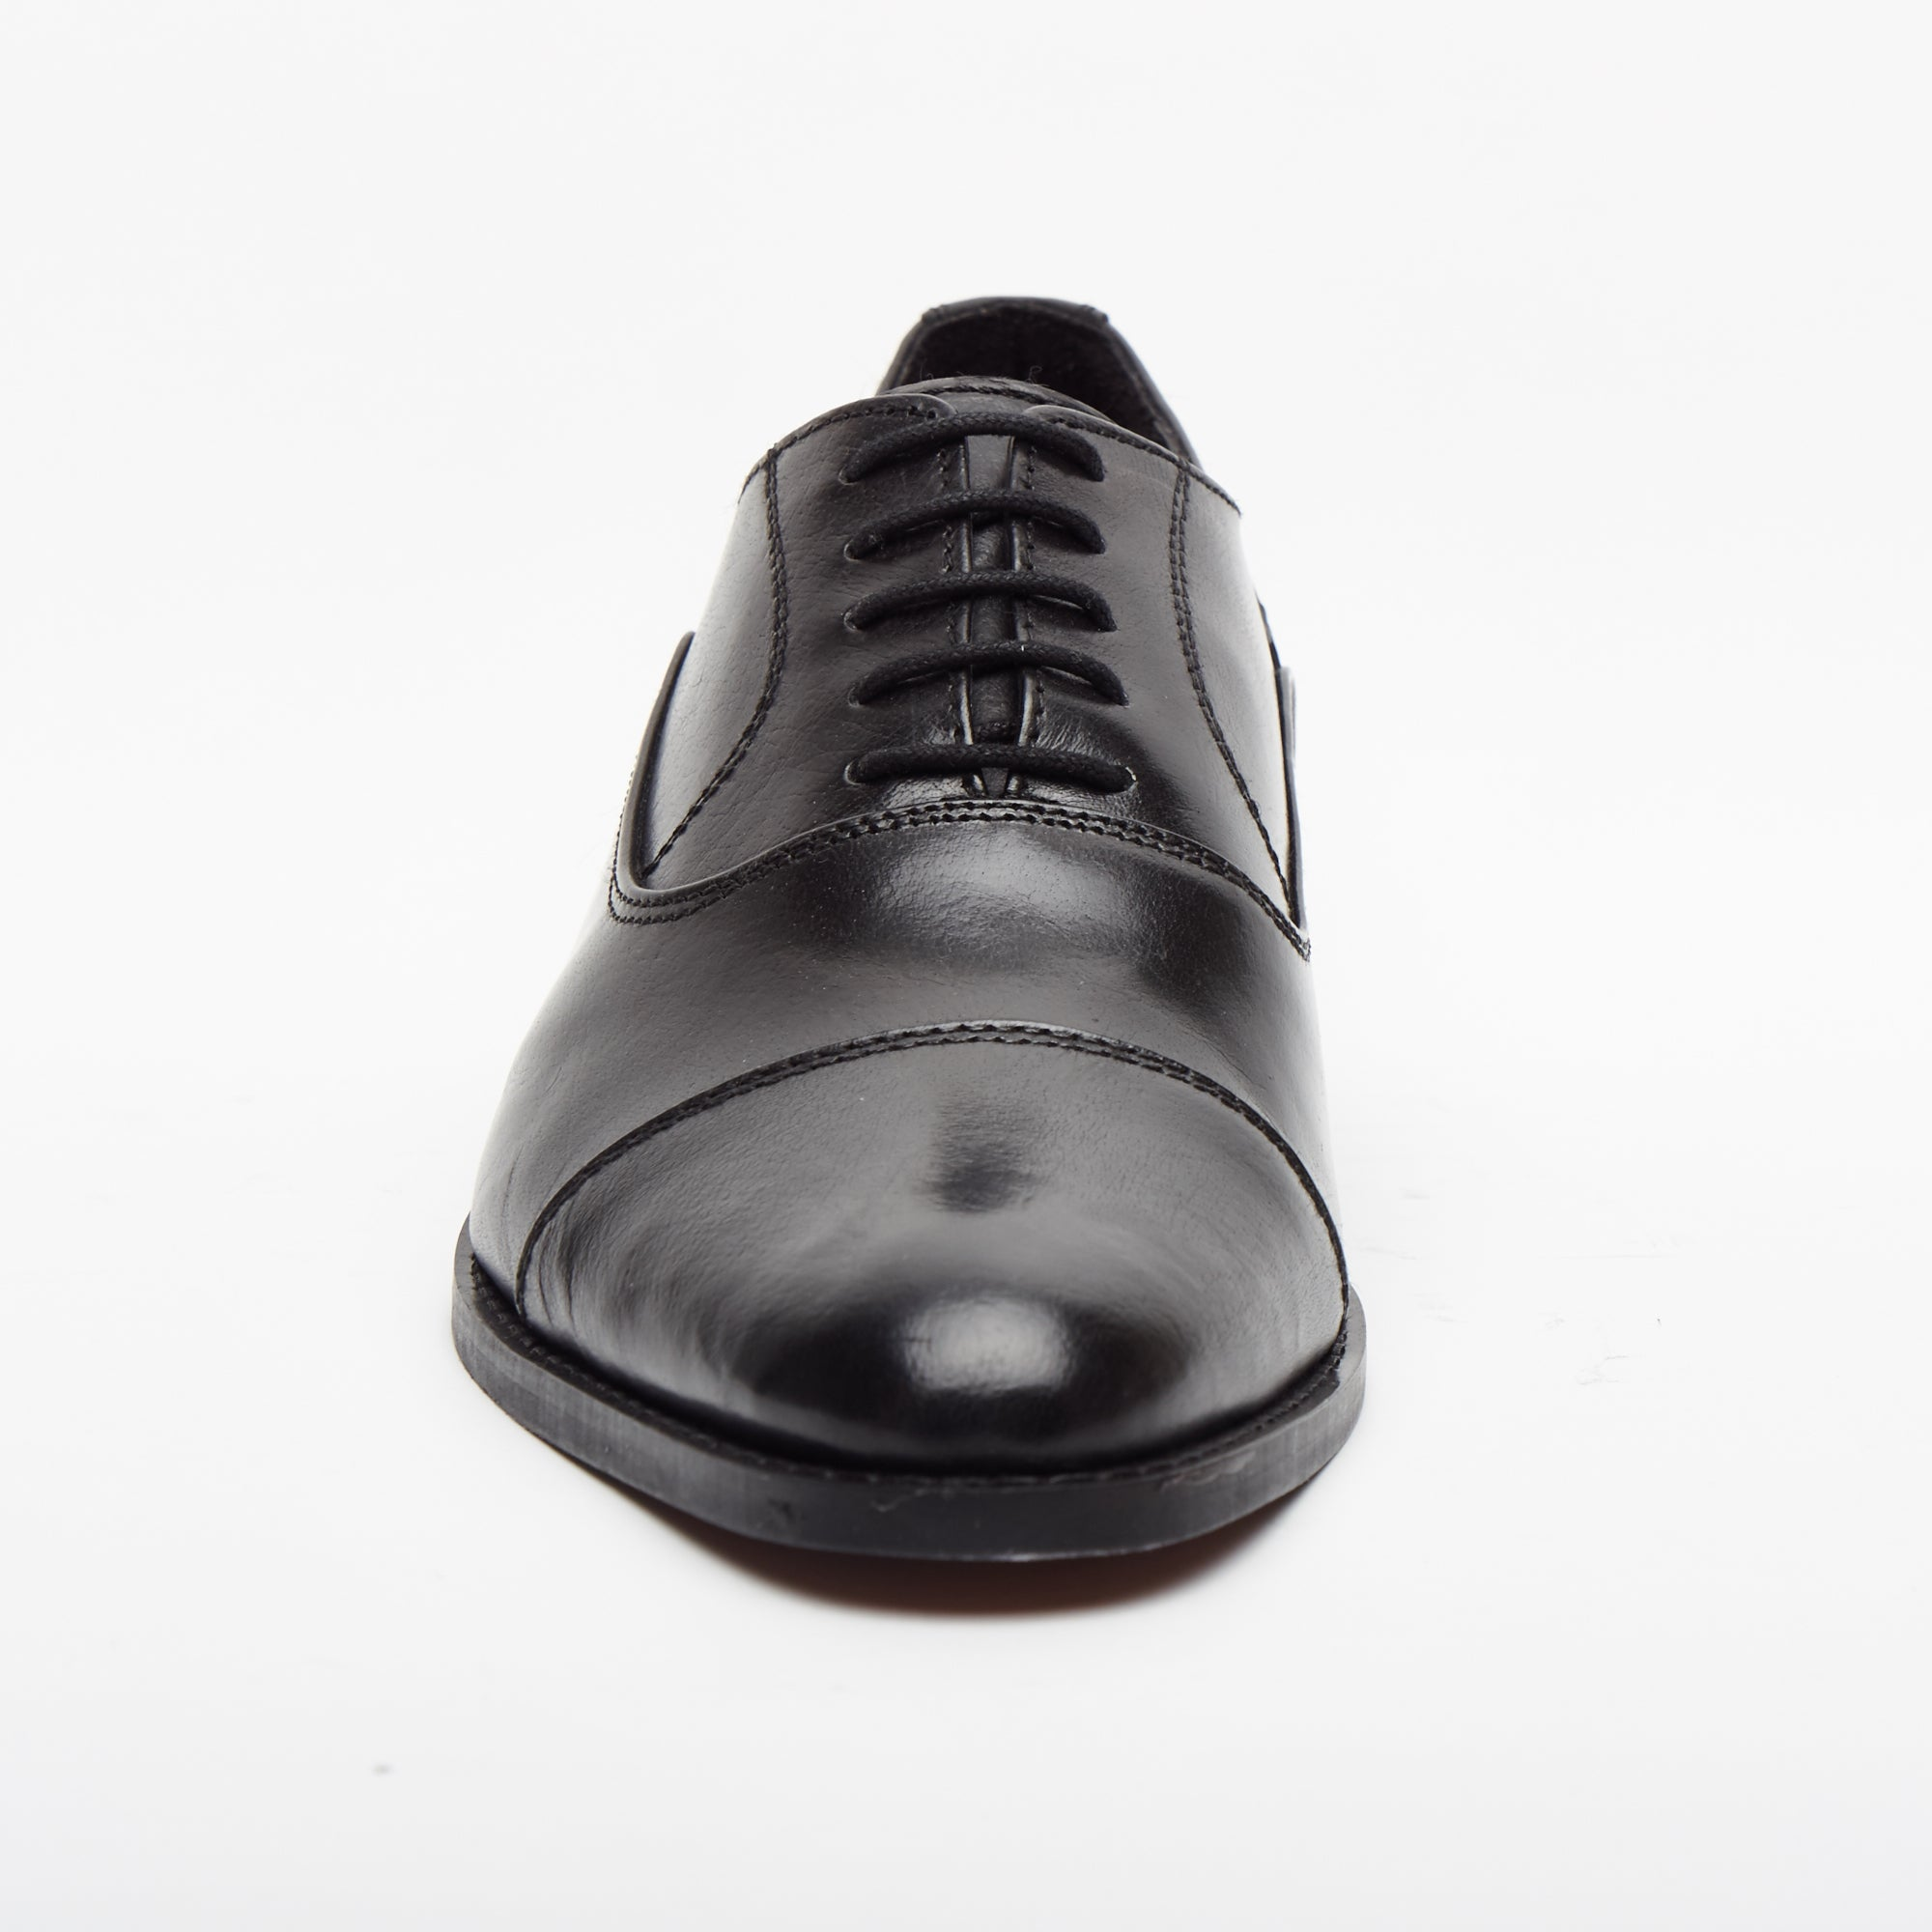 Mens Formal Shoes 9009_Black